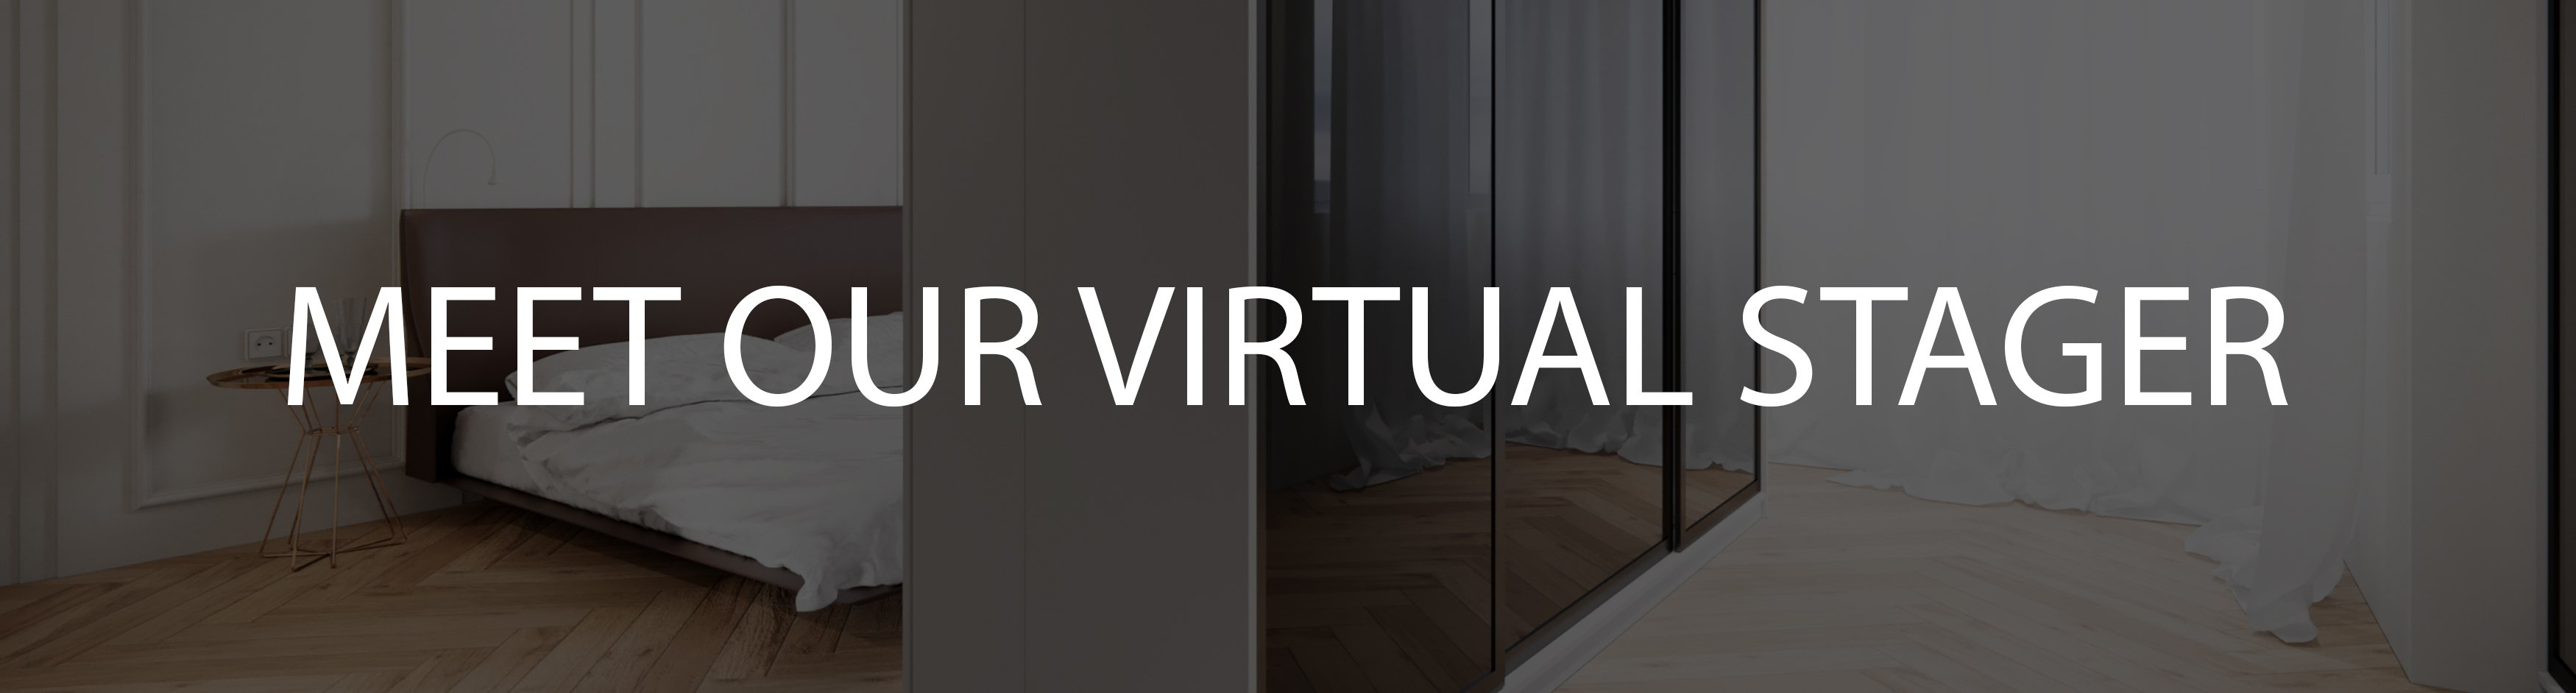 virtual stager in london